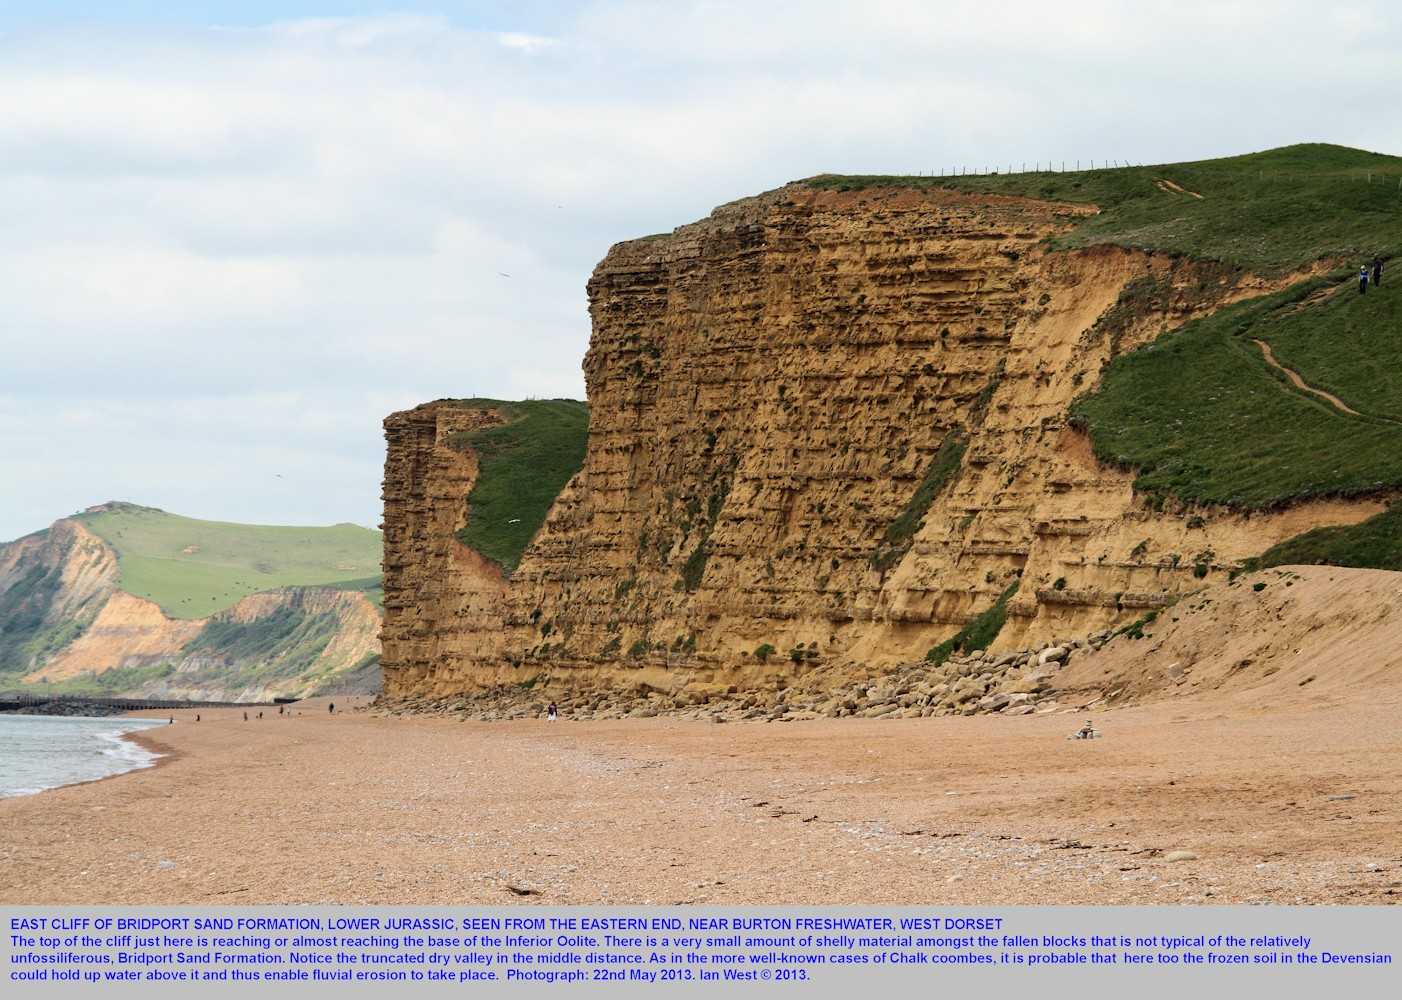 East Cliff, West Bay, Bridport, Dorset, seen from the eastern, Burton Freshwater end, May 2013